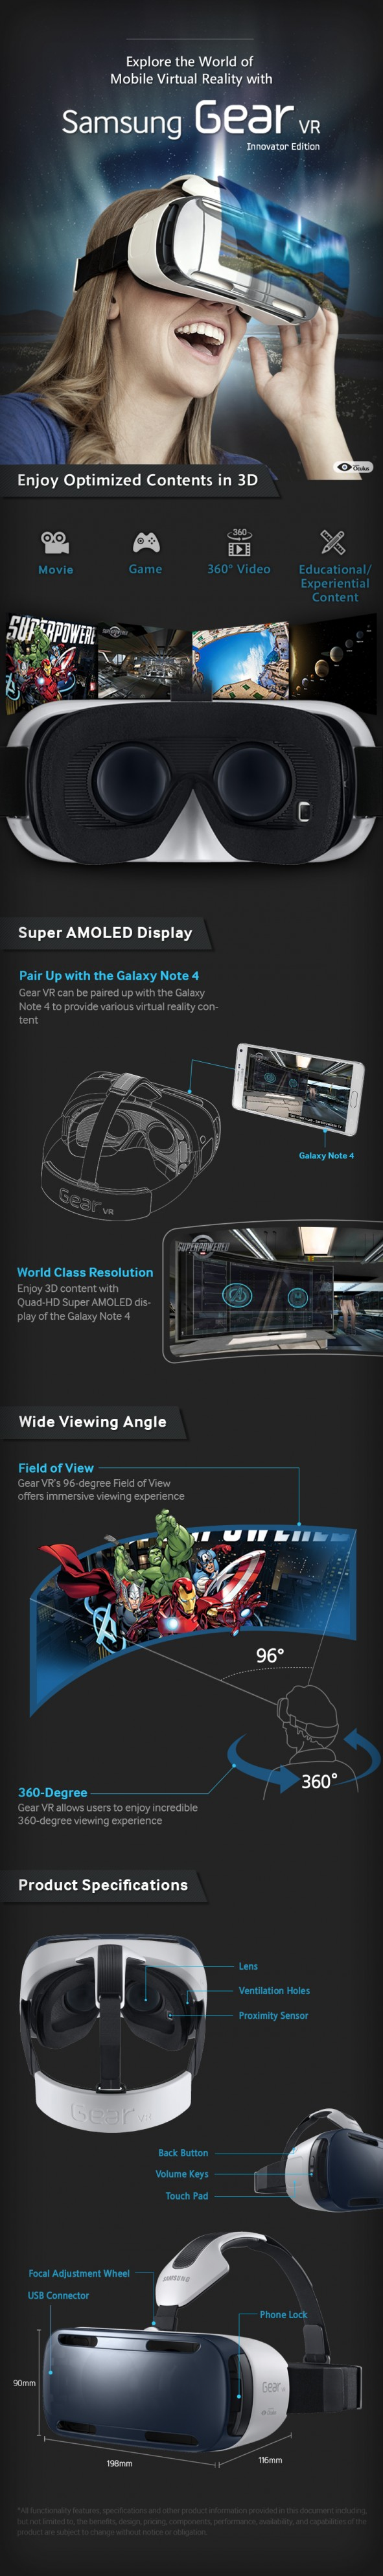 Gear_VR_Infographic